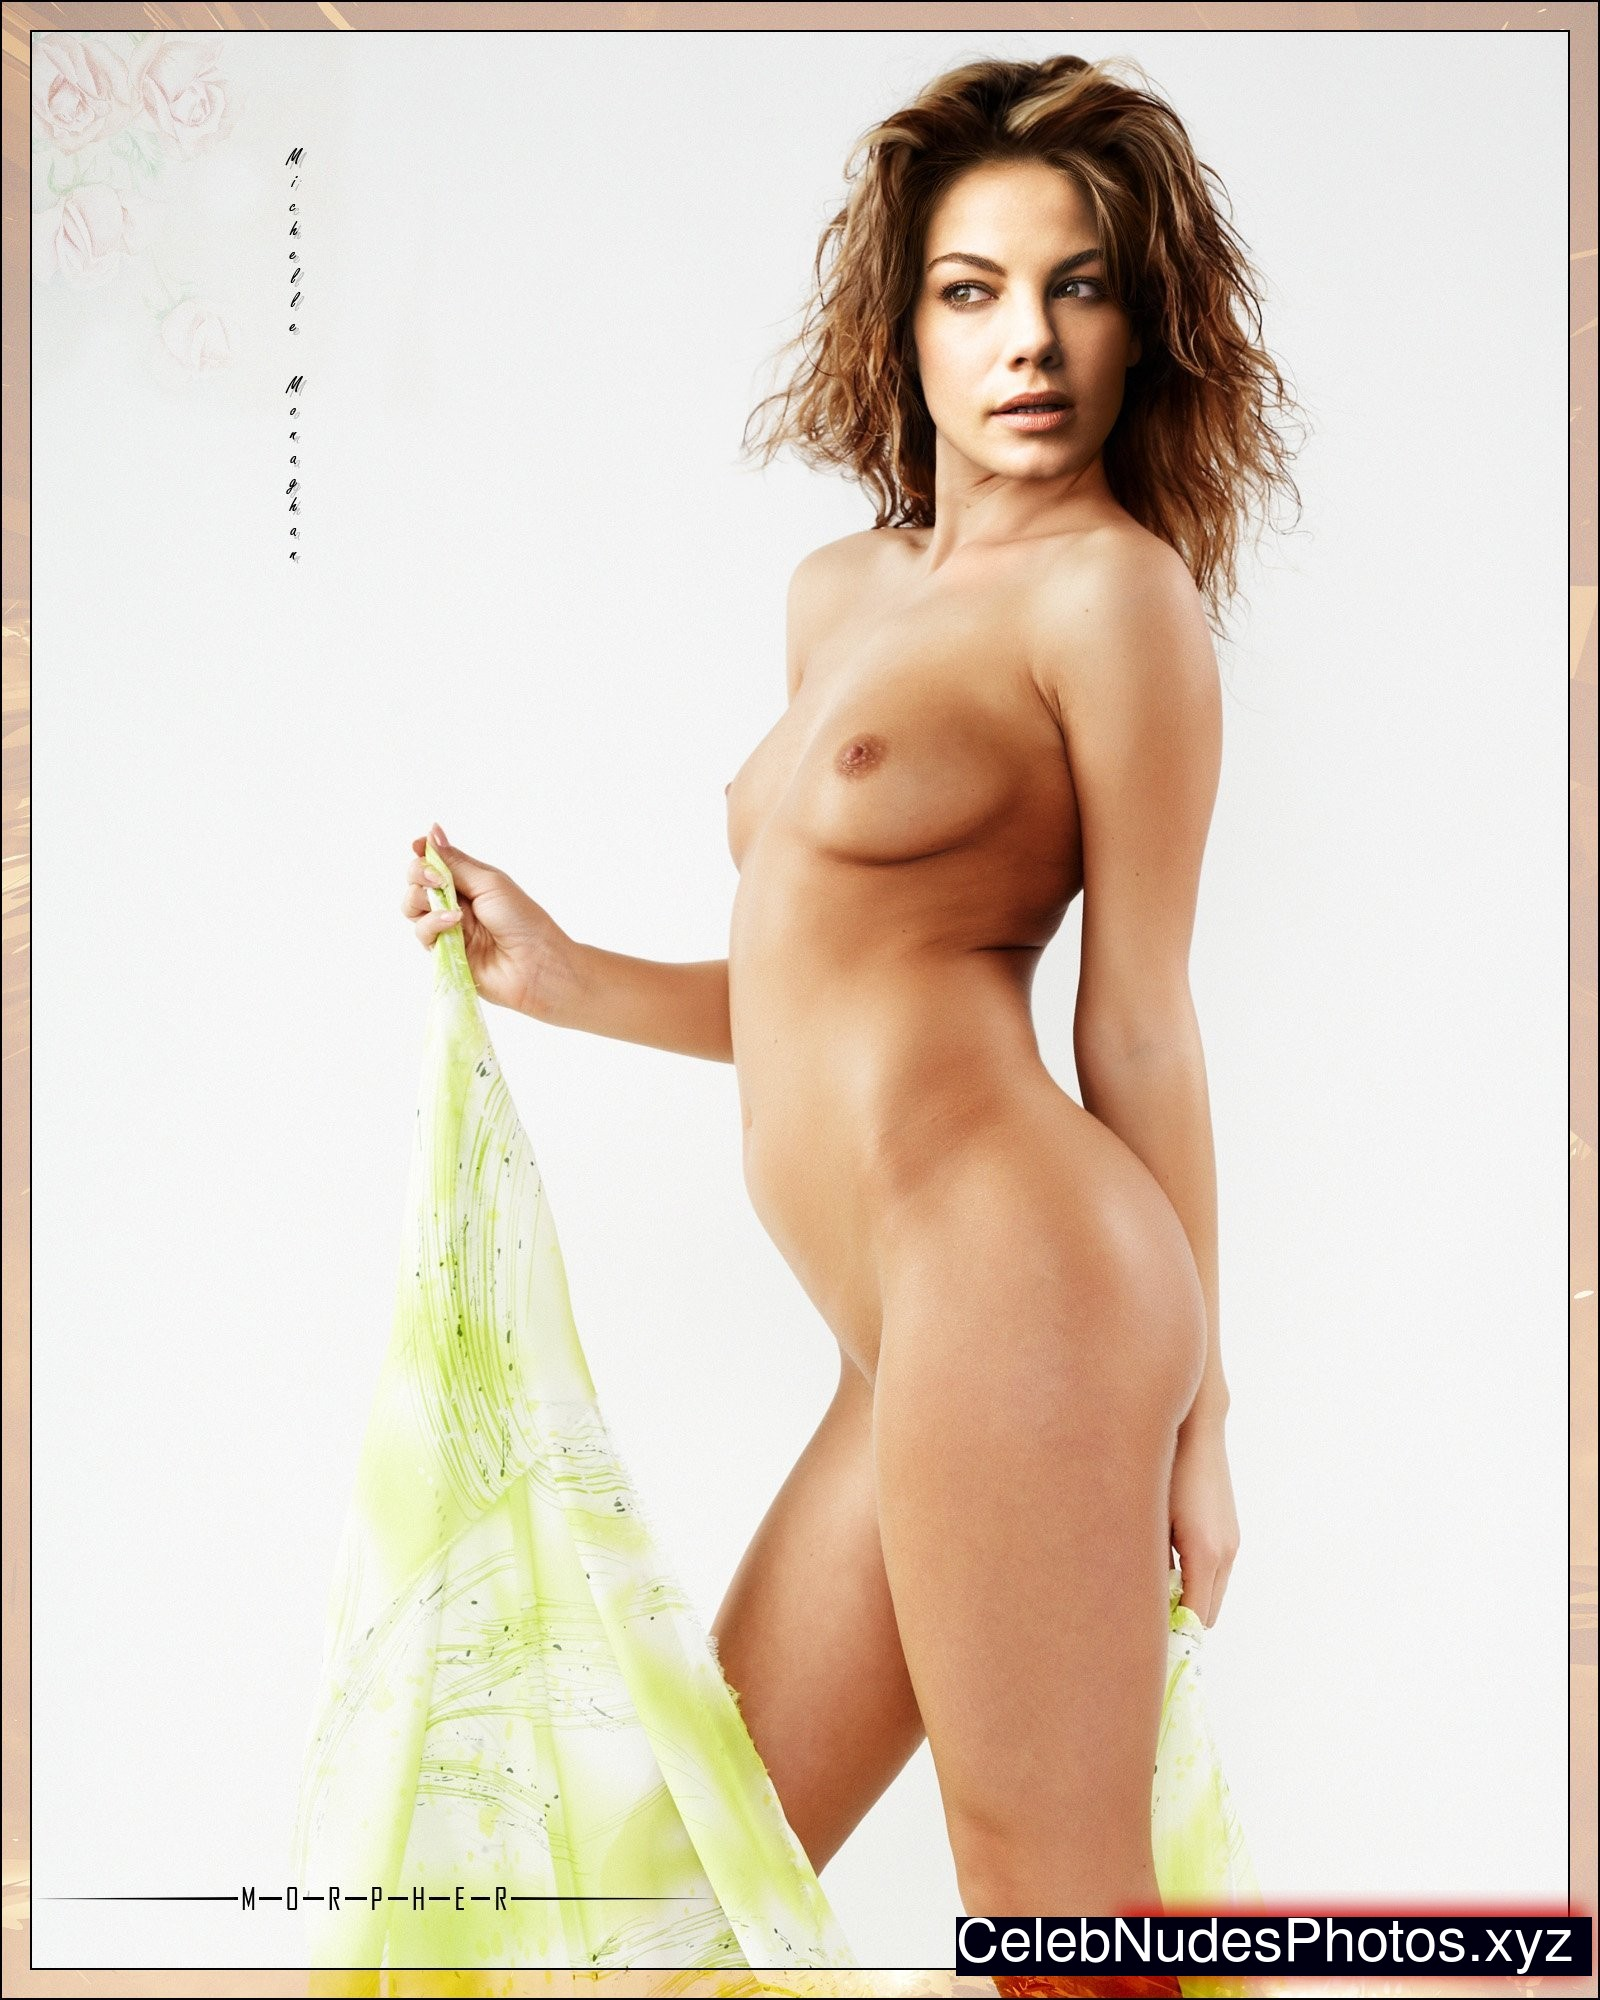 Michelle Monaghan naked celebrity pictures